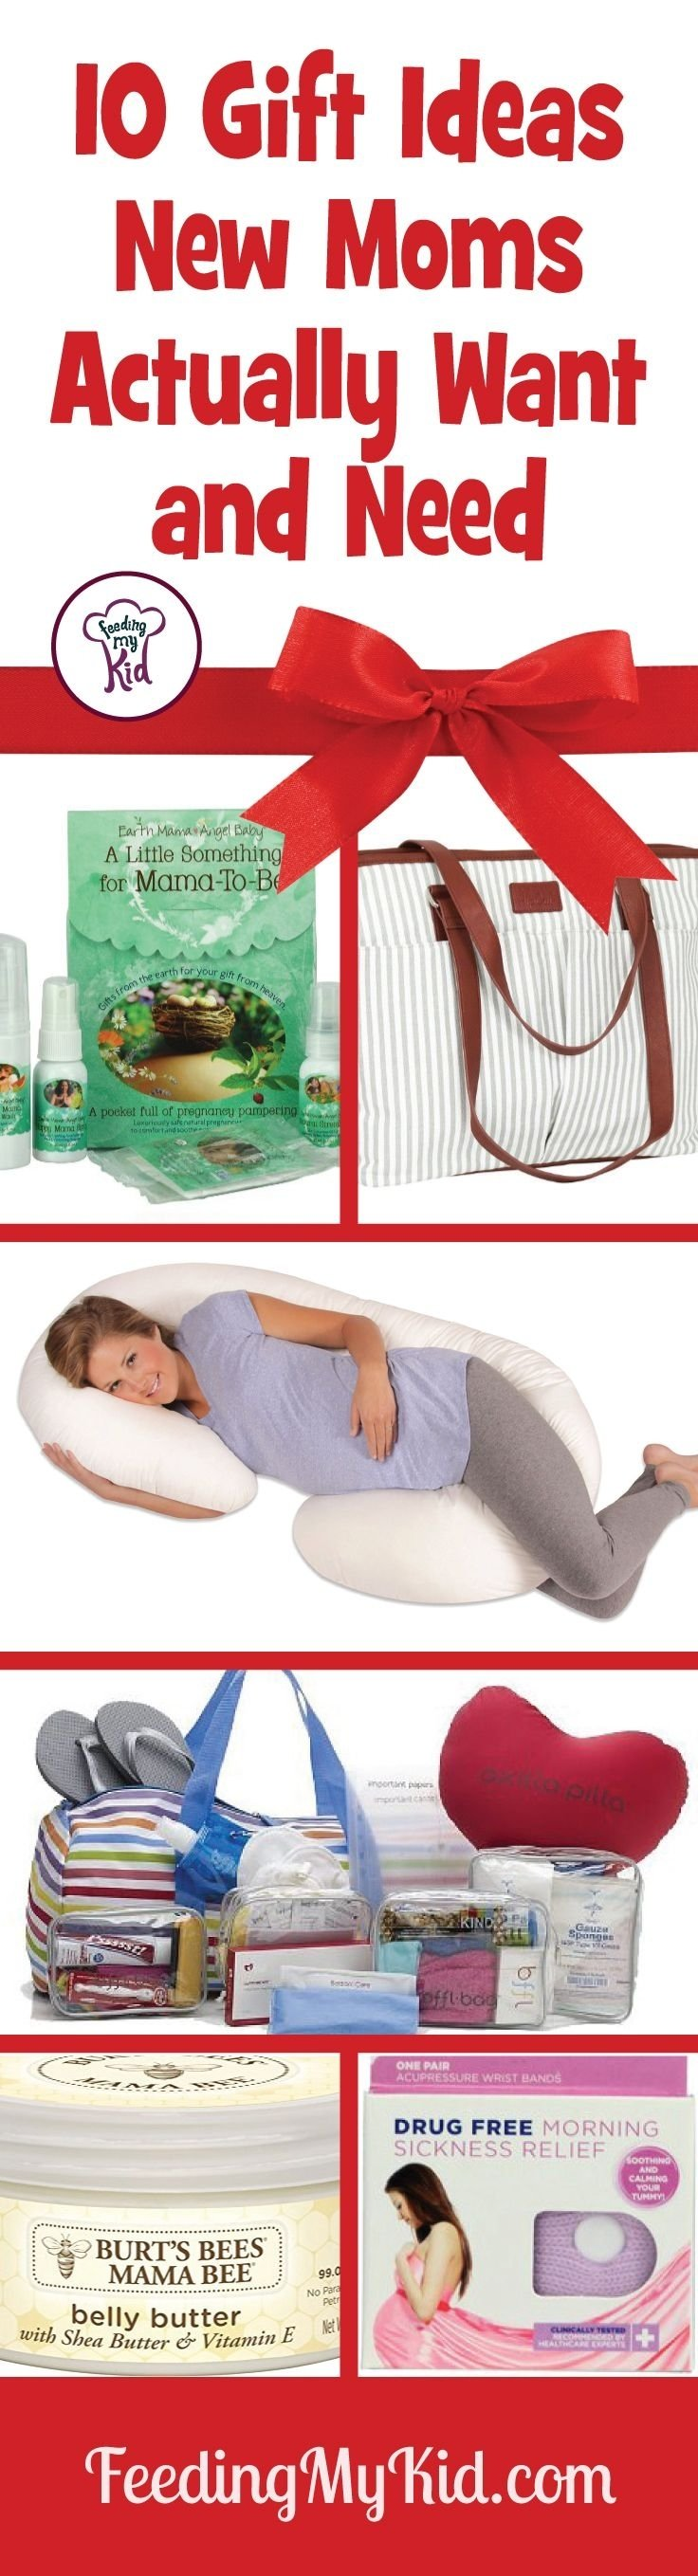 10 Most Popular Christmas Gift Ideas For Pregnant Women 10 gift ideas new moms actually want and need gift pregnancy and 2020